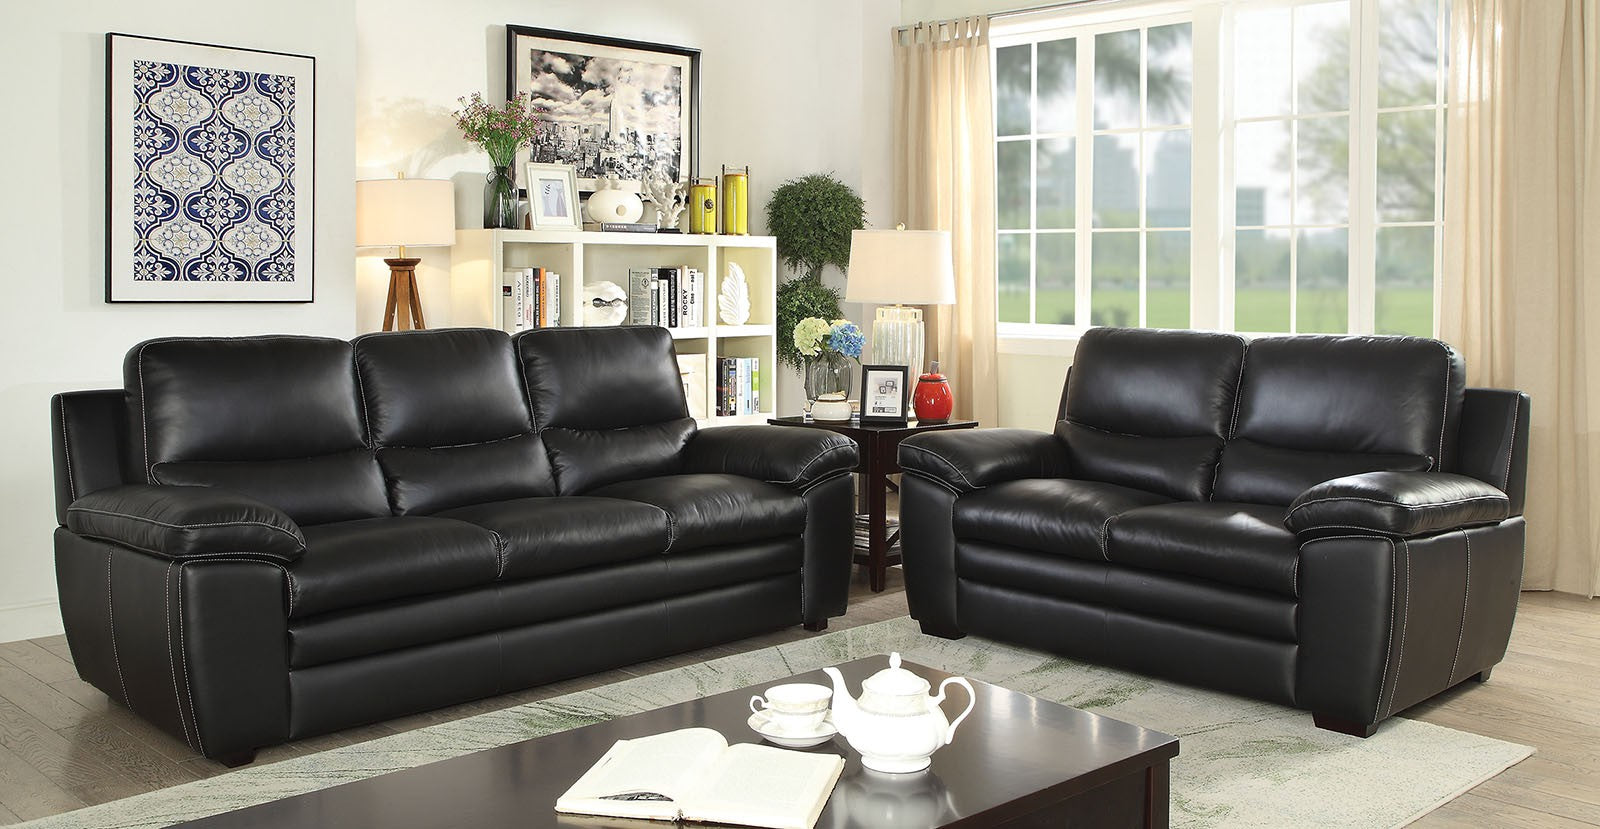 Mirielle Top Grain Leather Match Black Contemporary Sofa